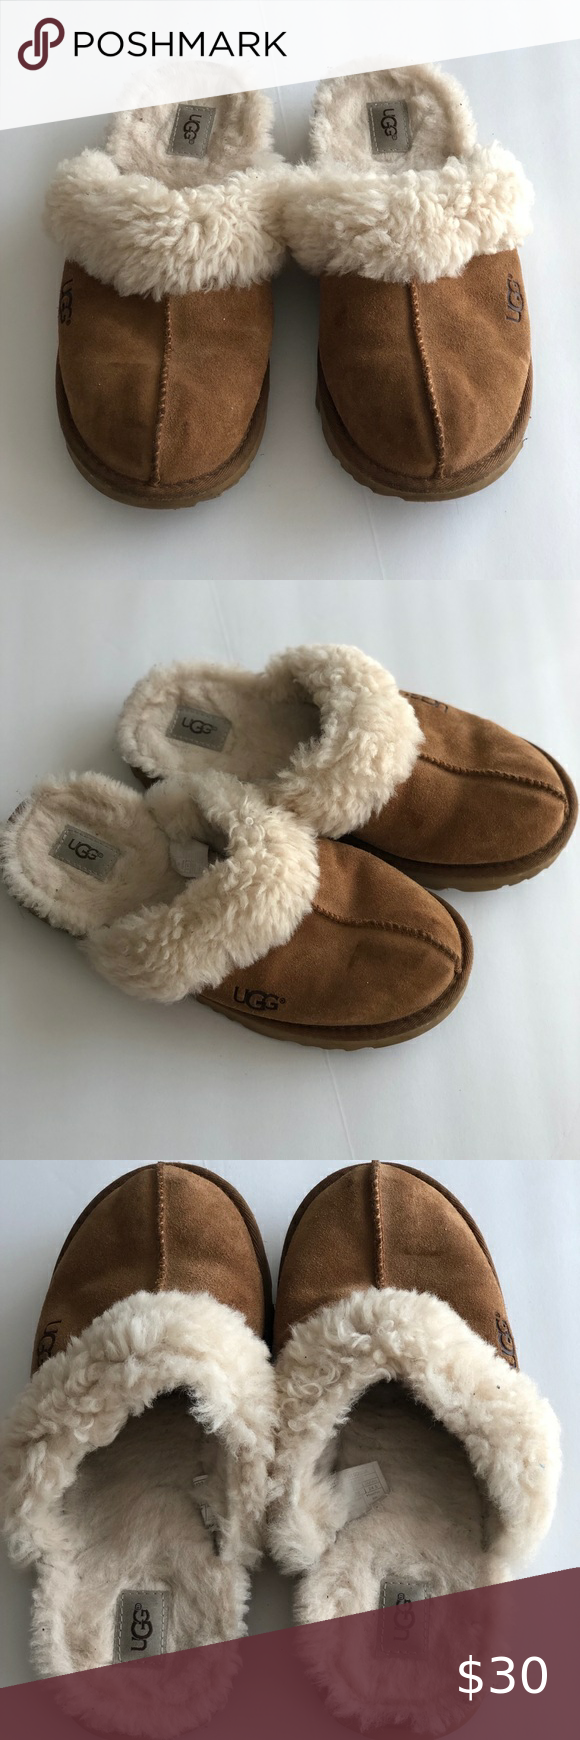 UGG Slippers BIG KID SIZE 6 Used. Does